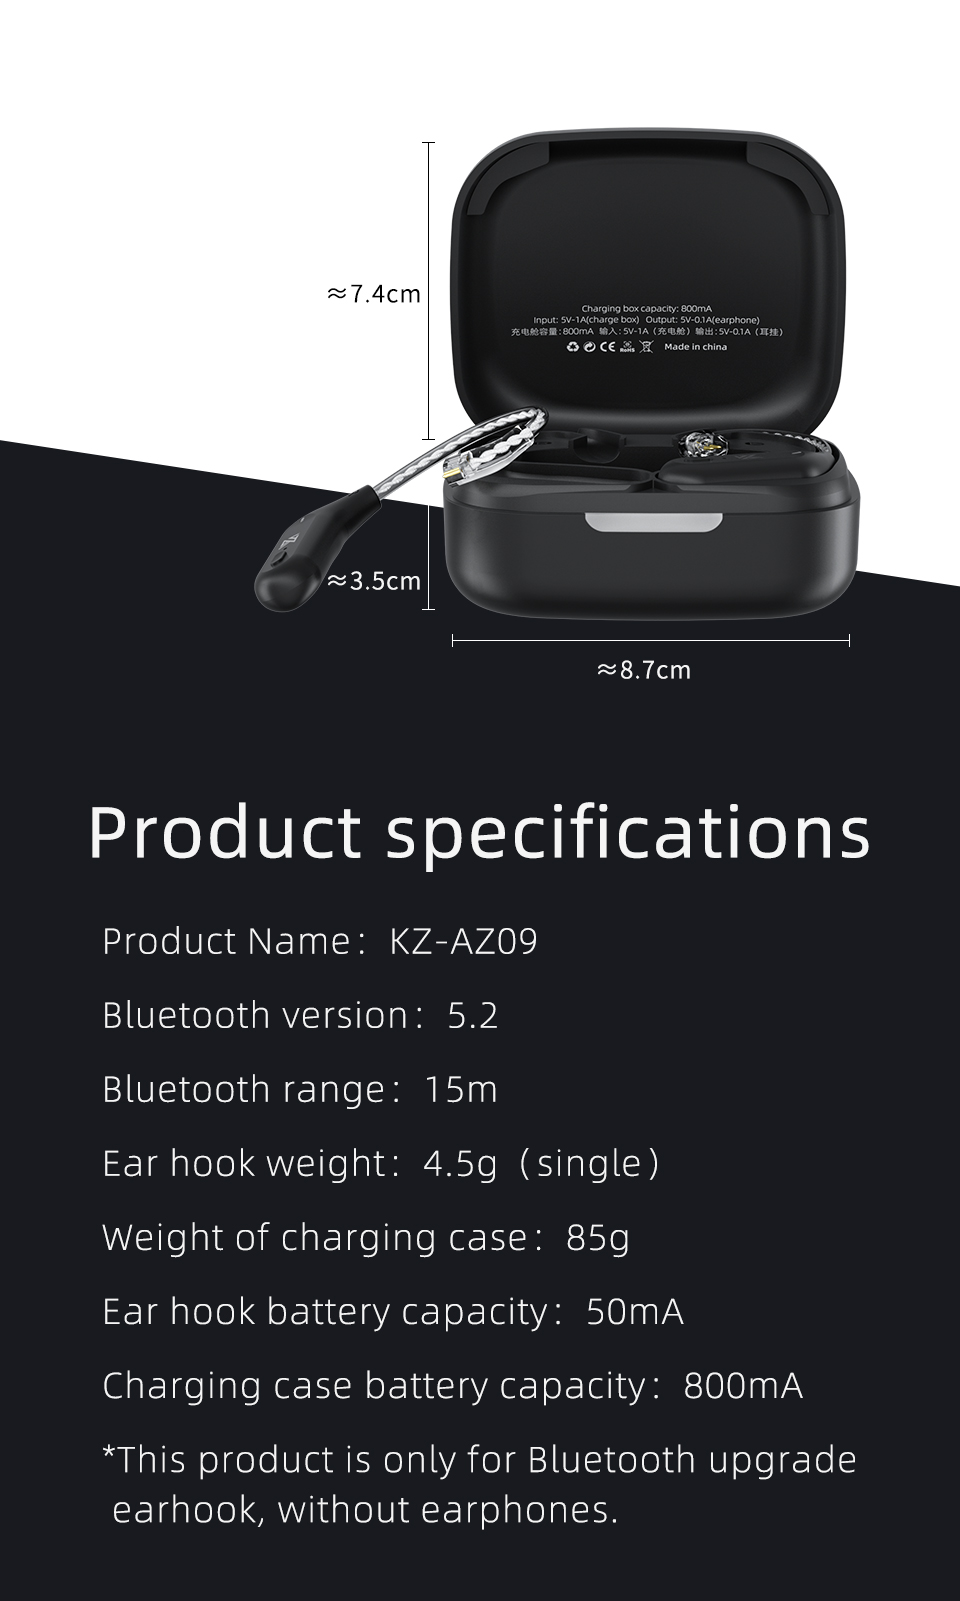 Kz az09 hd bluetooth module wireless upgrade cable bluetooth 5.2 hifi wireless ear hook c pin connector with charging case